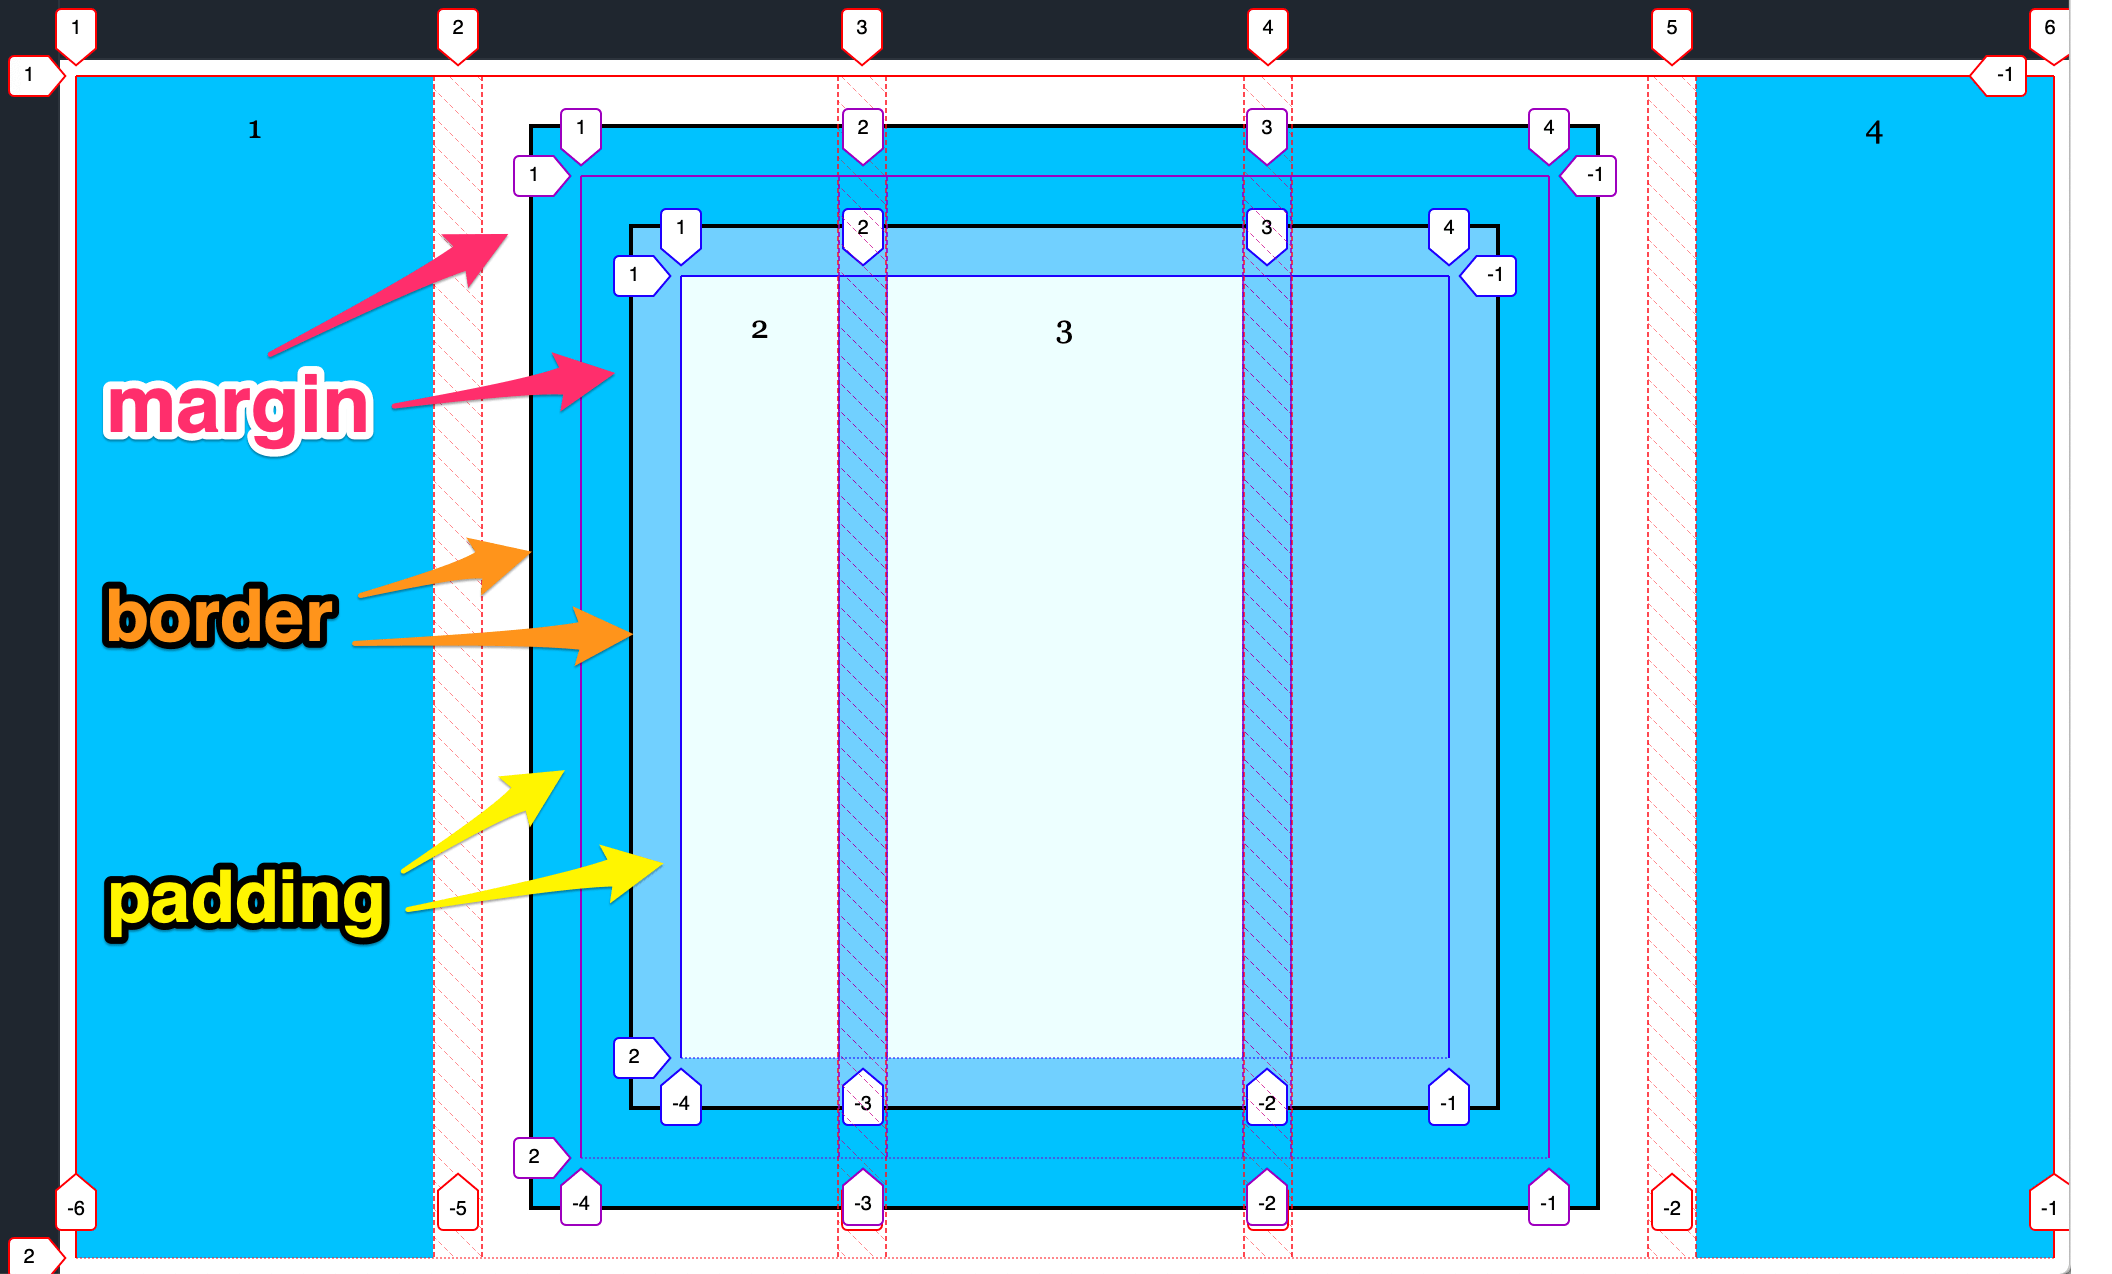 Diagram showing nested subgrid with margin, padding and borders